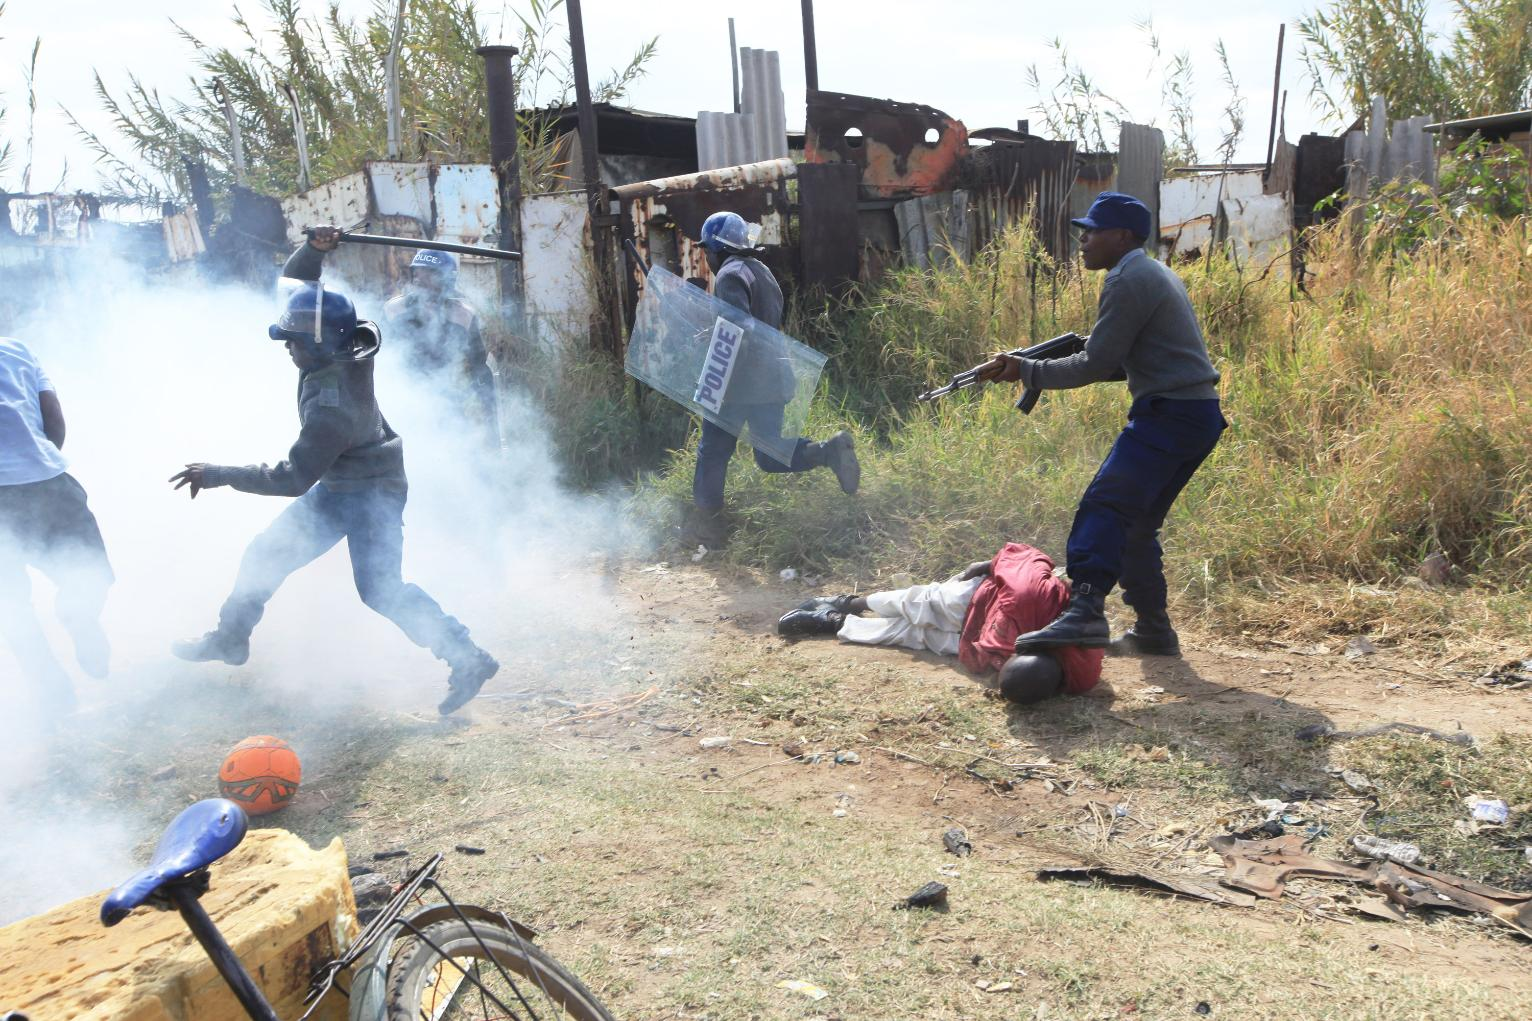 Police battle rioters in Zimbabwe's capital | World News ...